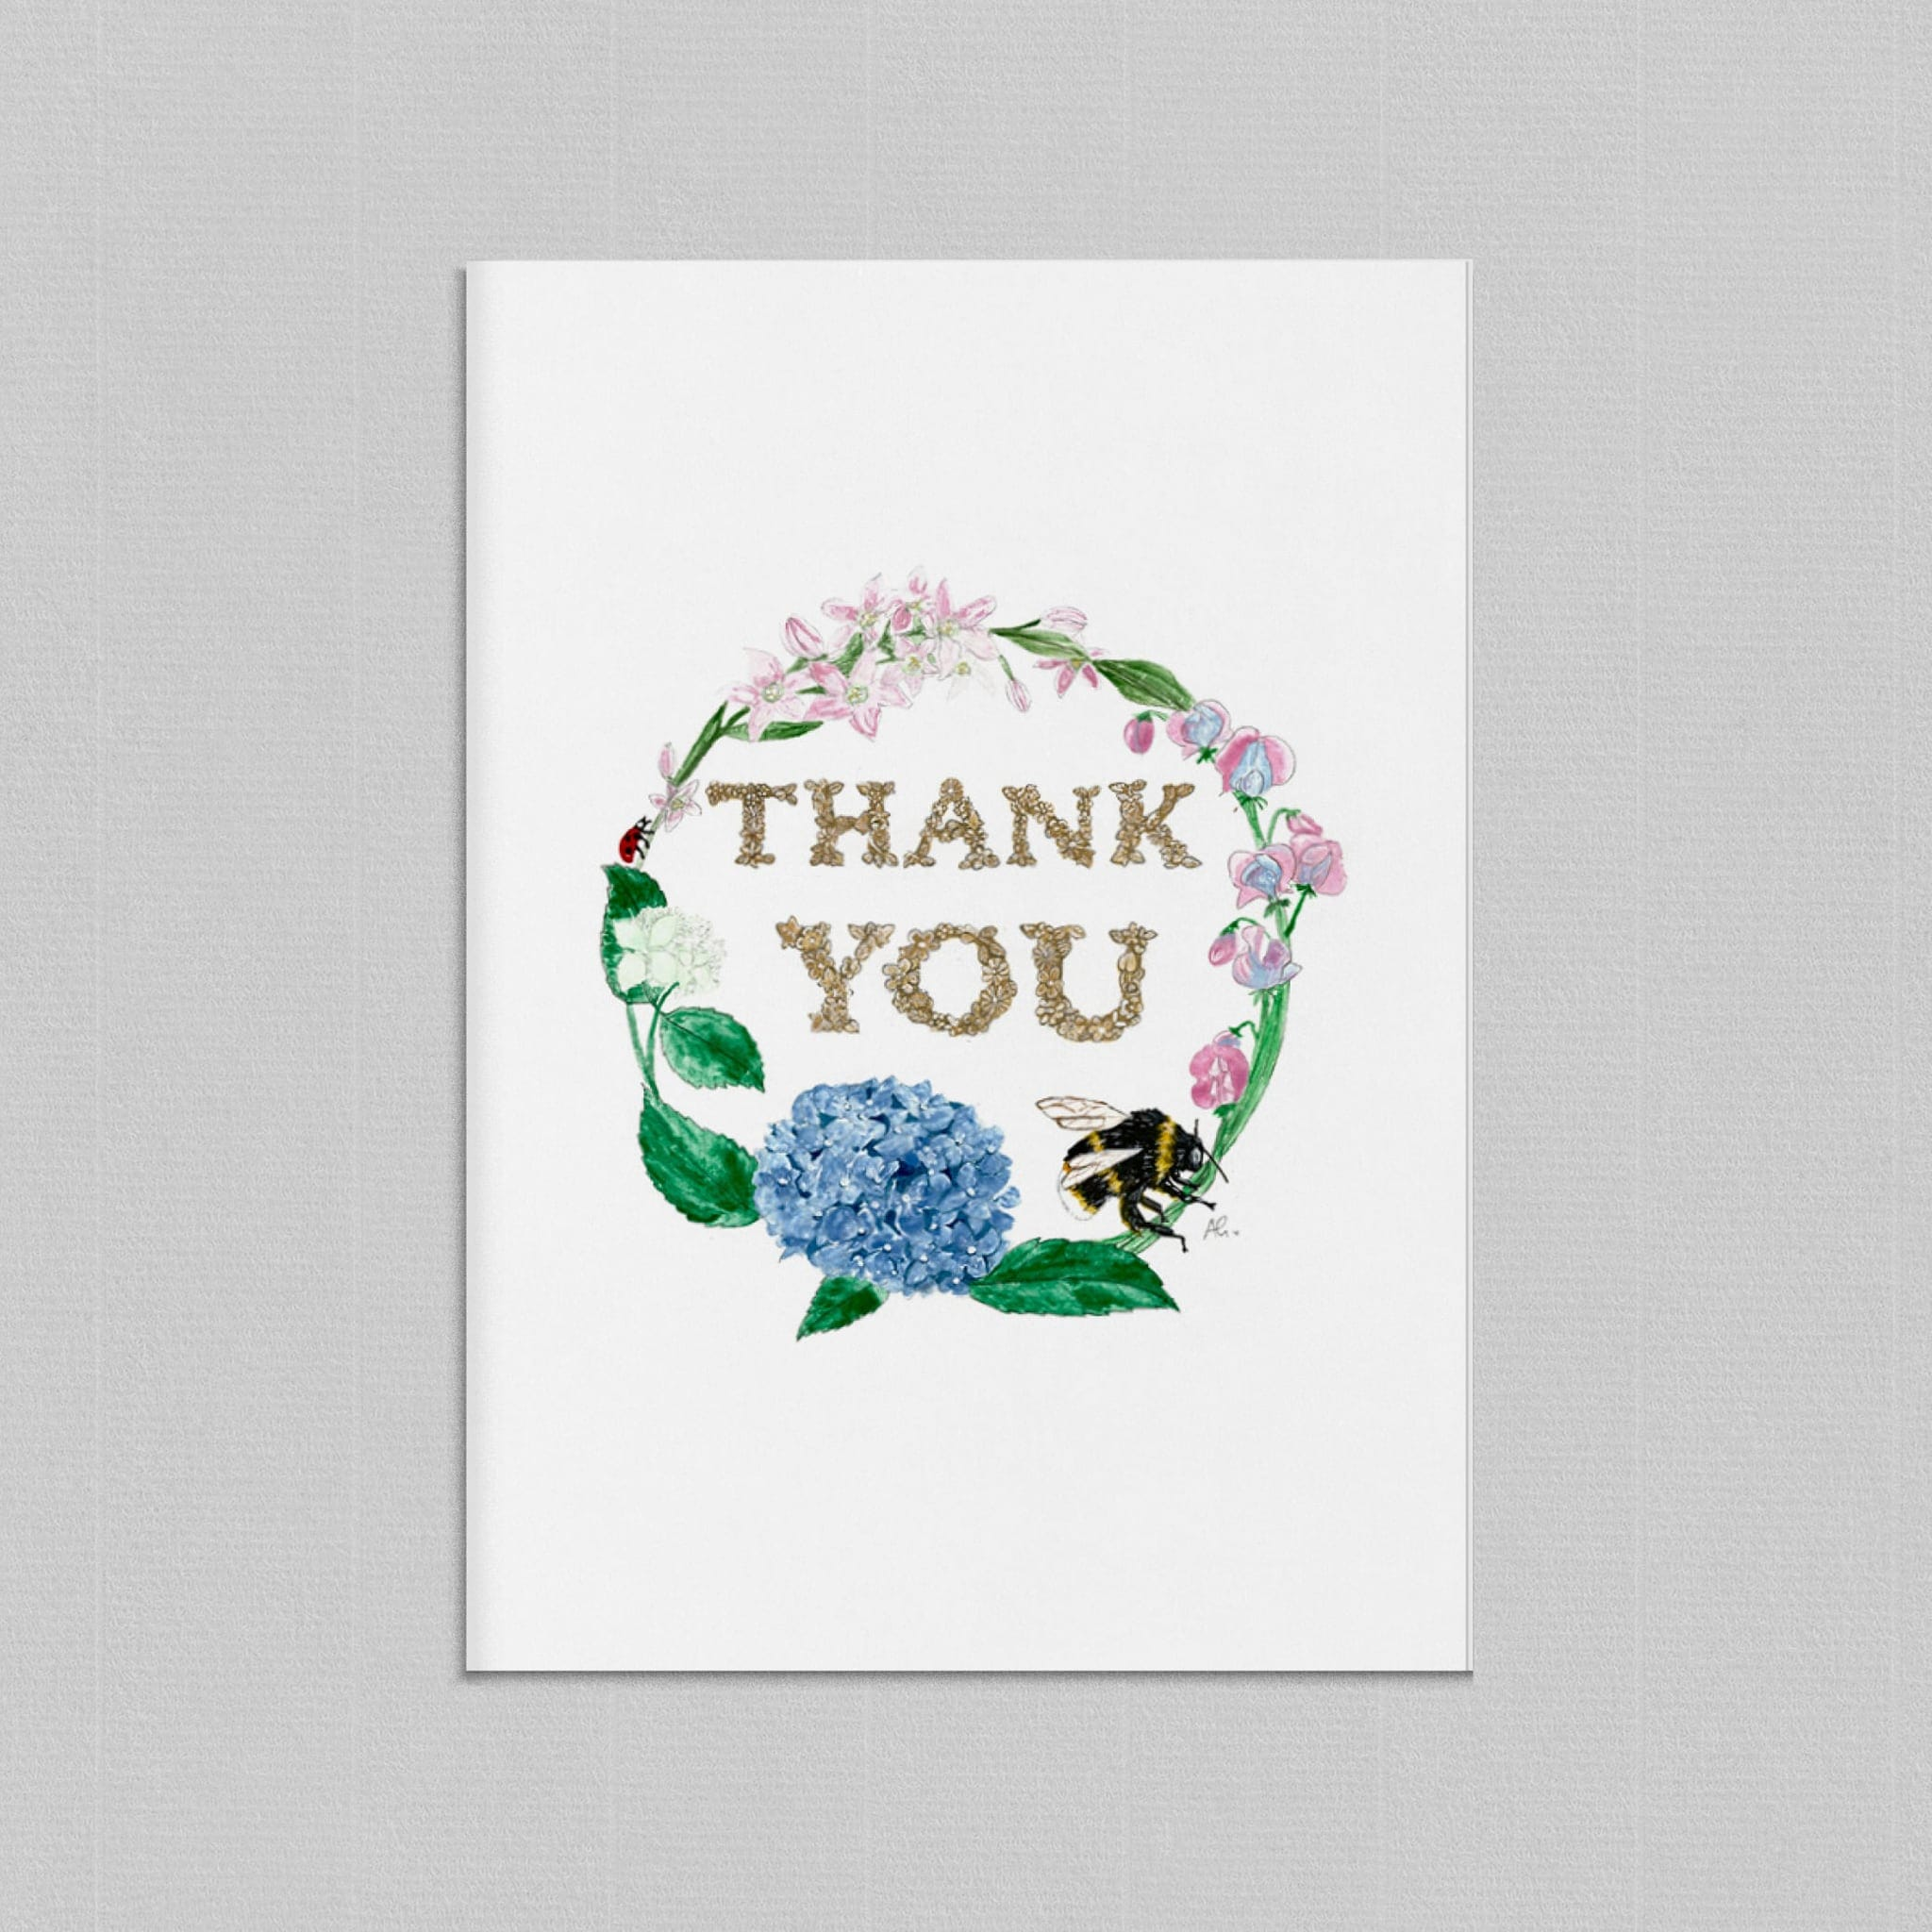 Thank You Illustrated Greetings Card